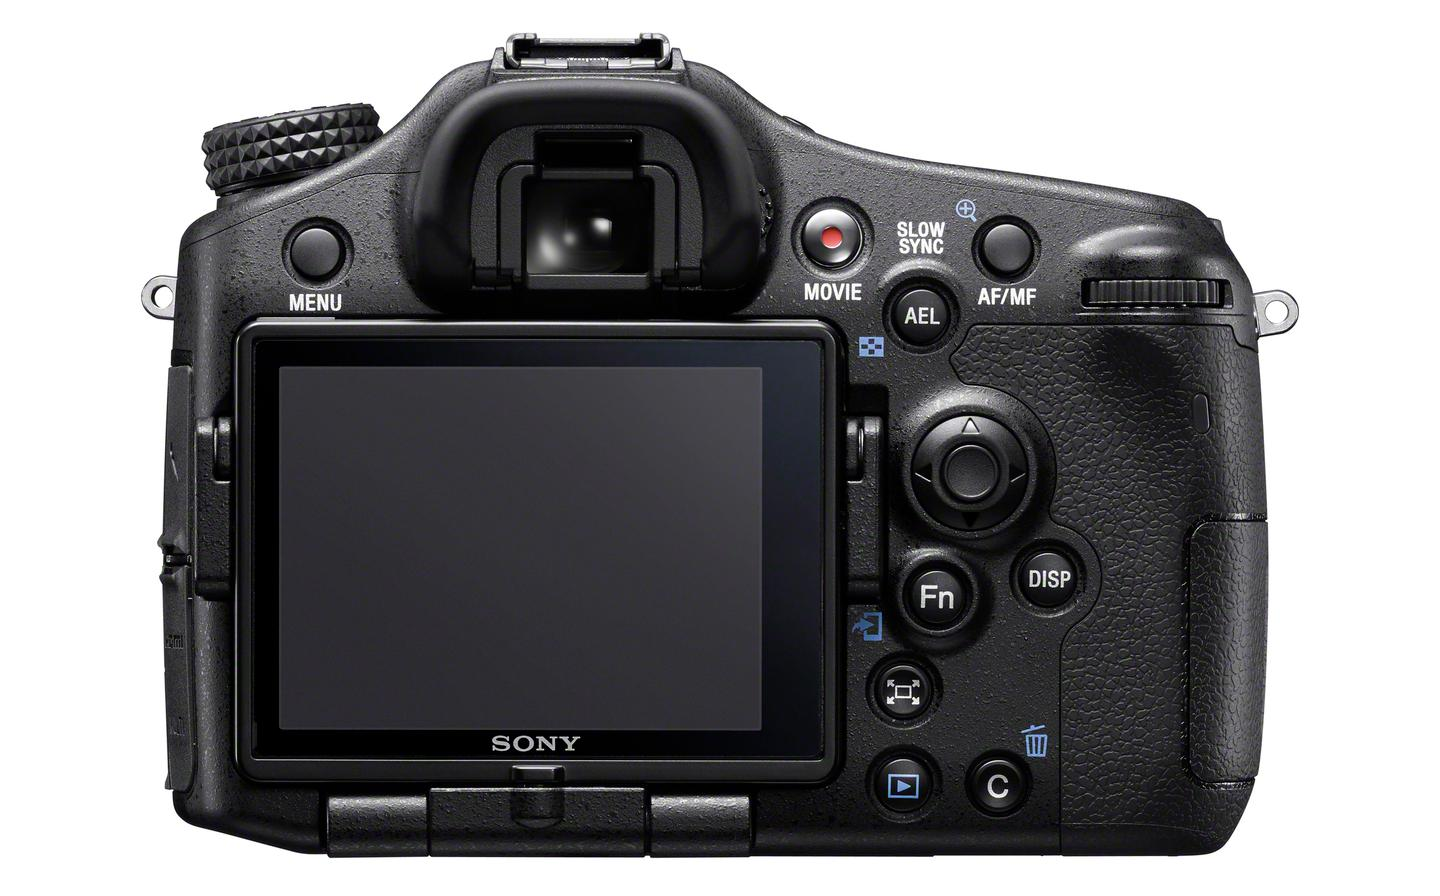 The Sony A77 II has an OLED electronic viewfinder with a 2,359,296 dot effective resolution